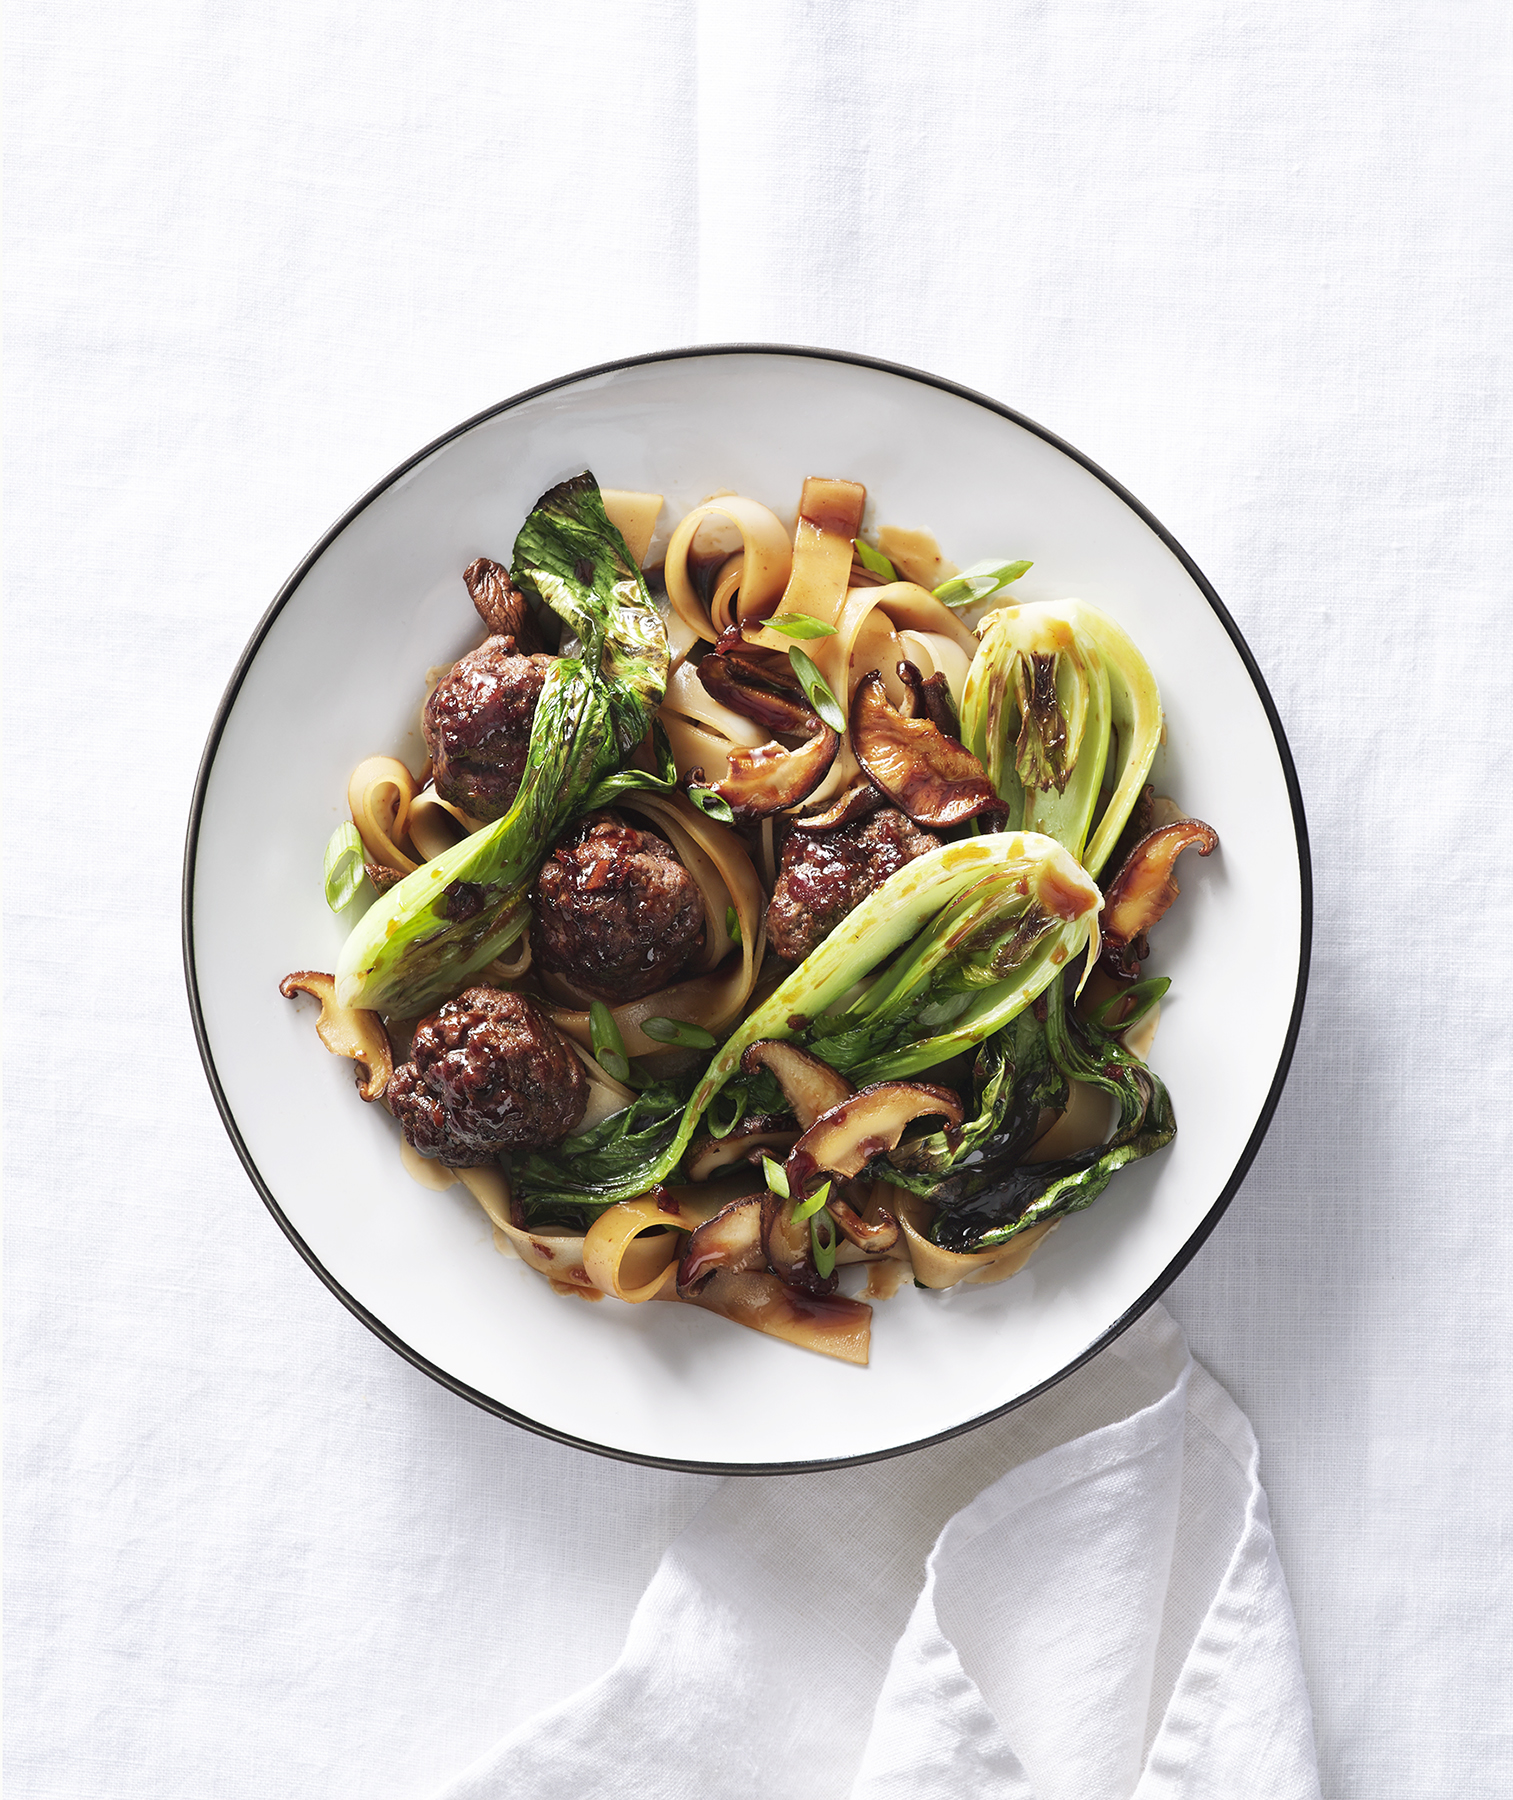 rice-noodles-meatballs-mushrooms-bok-choy